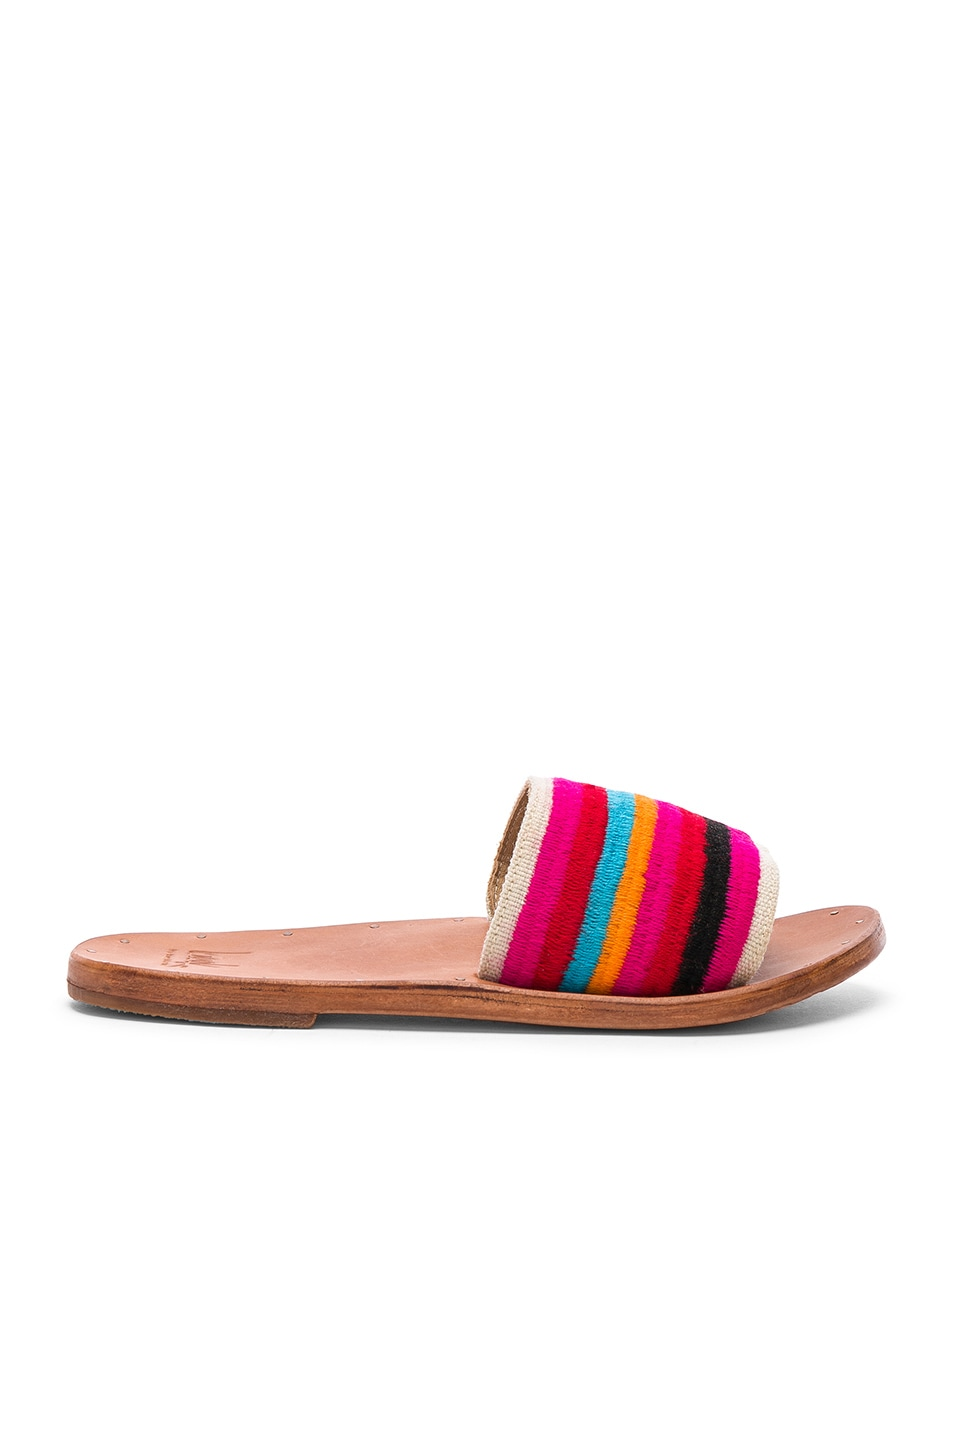 BEEK Lovebird Sandal in Multi & Tan 100% Guaranteed Cheap Price Clearance Top Quality Sale Perfect Clearance View lNCgAdU